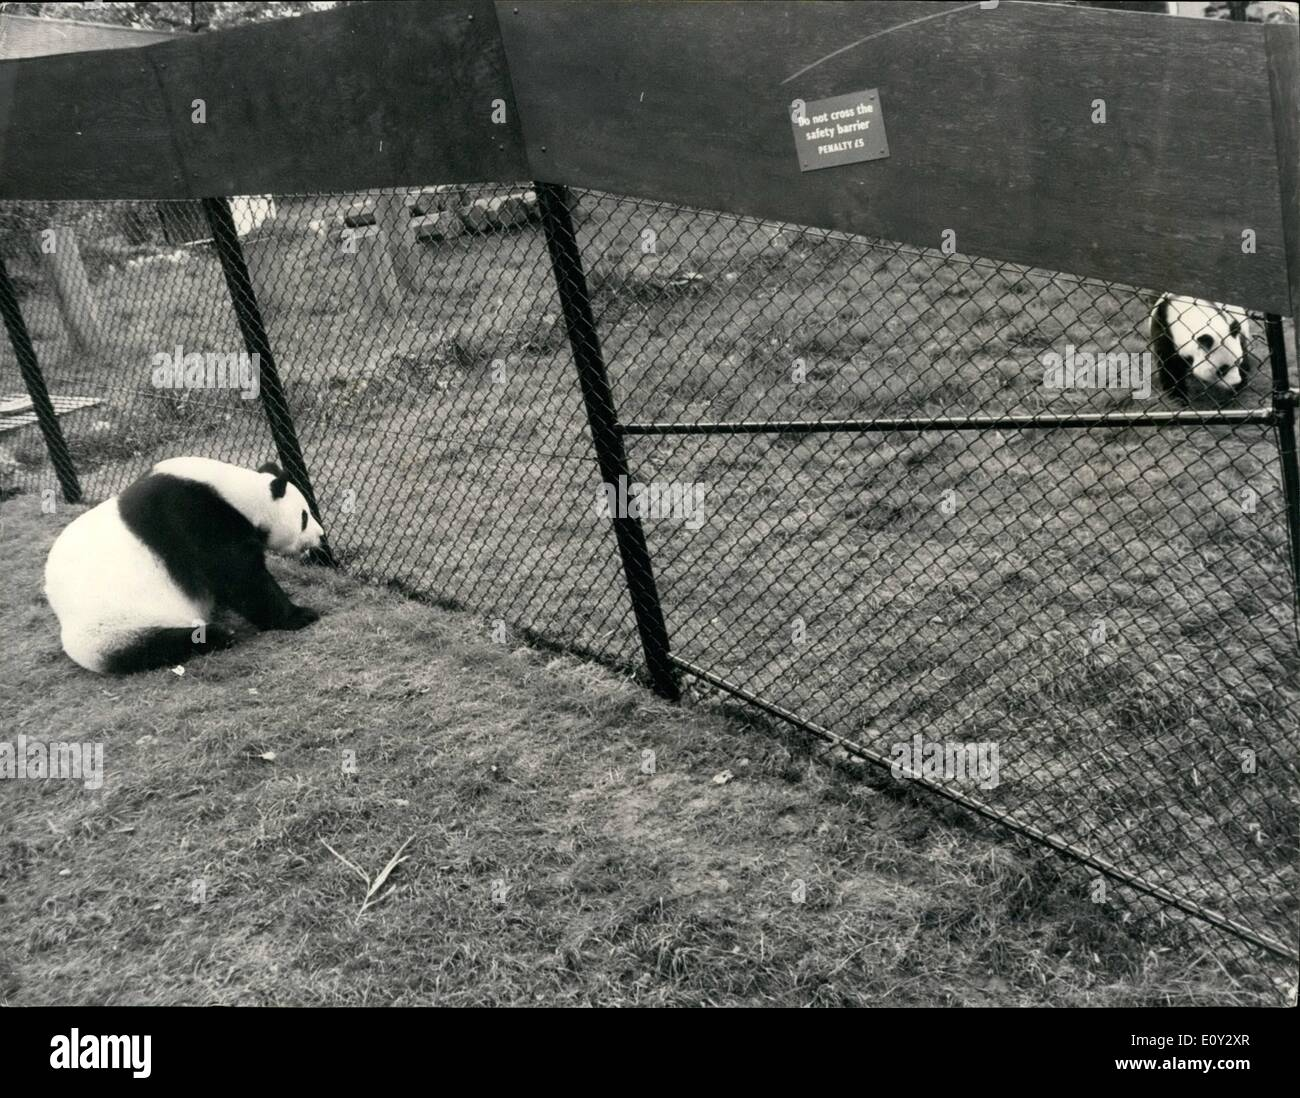 Sep. 09, 1968 - The Continued Courtship of Chi-Chi and An- An: An- An, the Russian giant panda, is at London Zoo - Stock Image